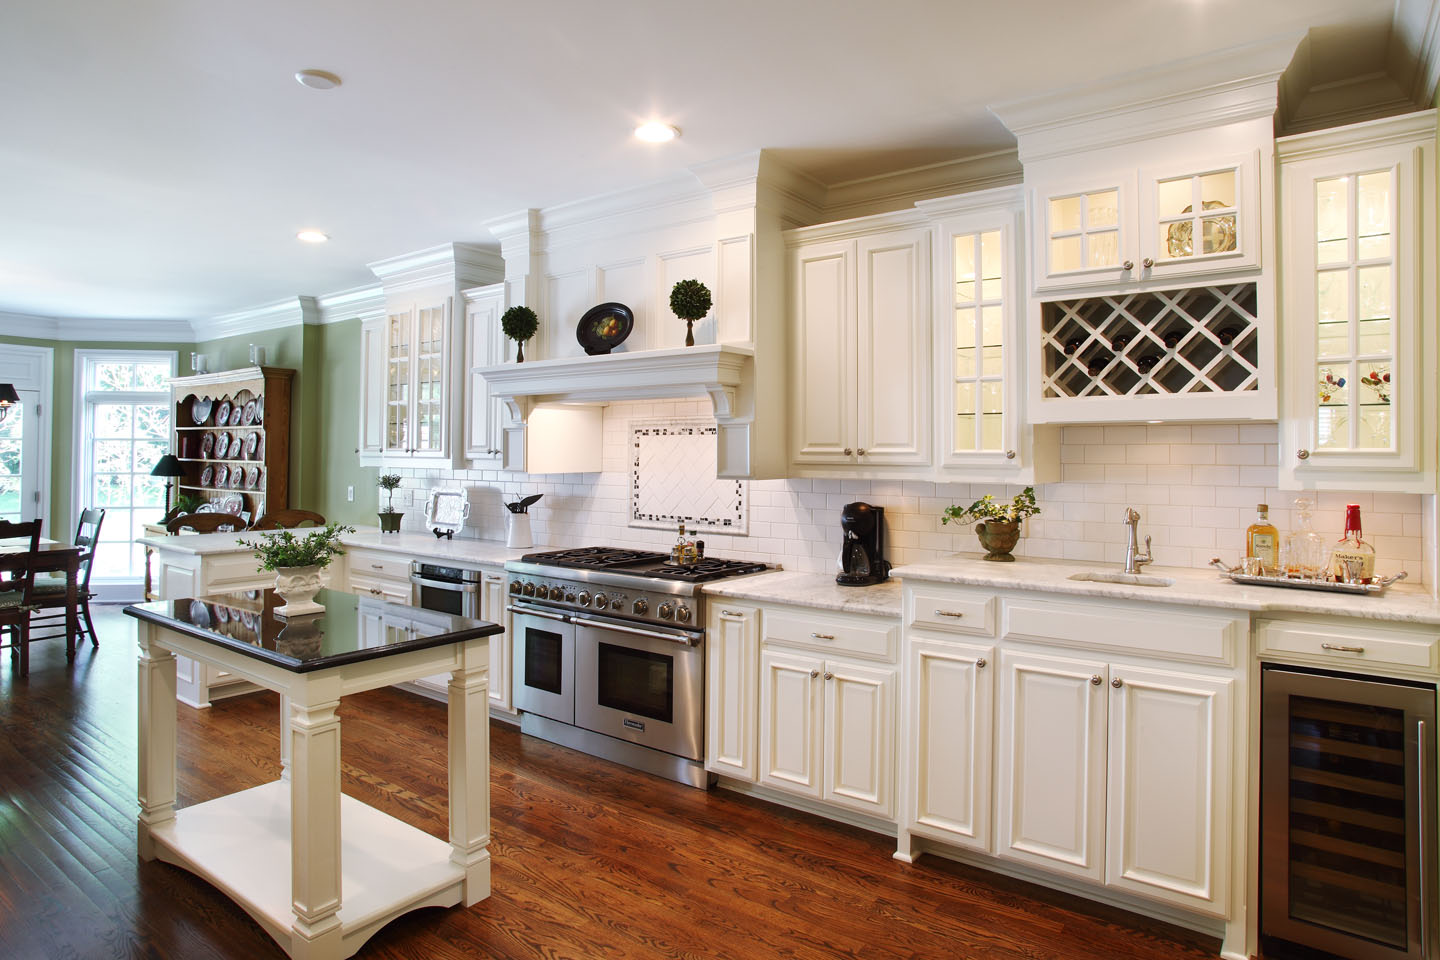 6925_Belinder_Avenue_Kitchen_2.jpg